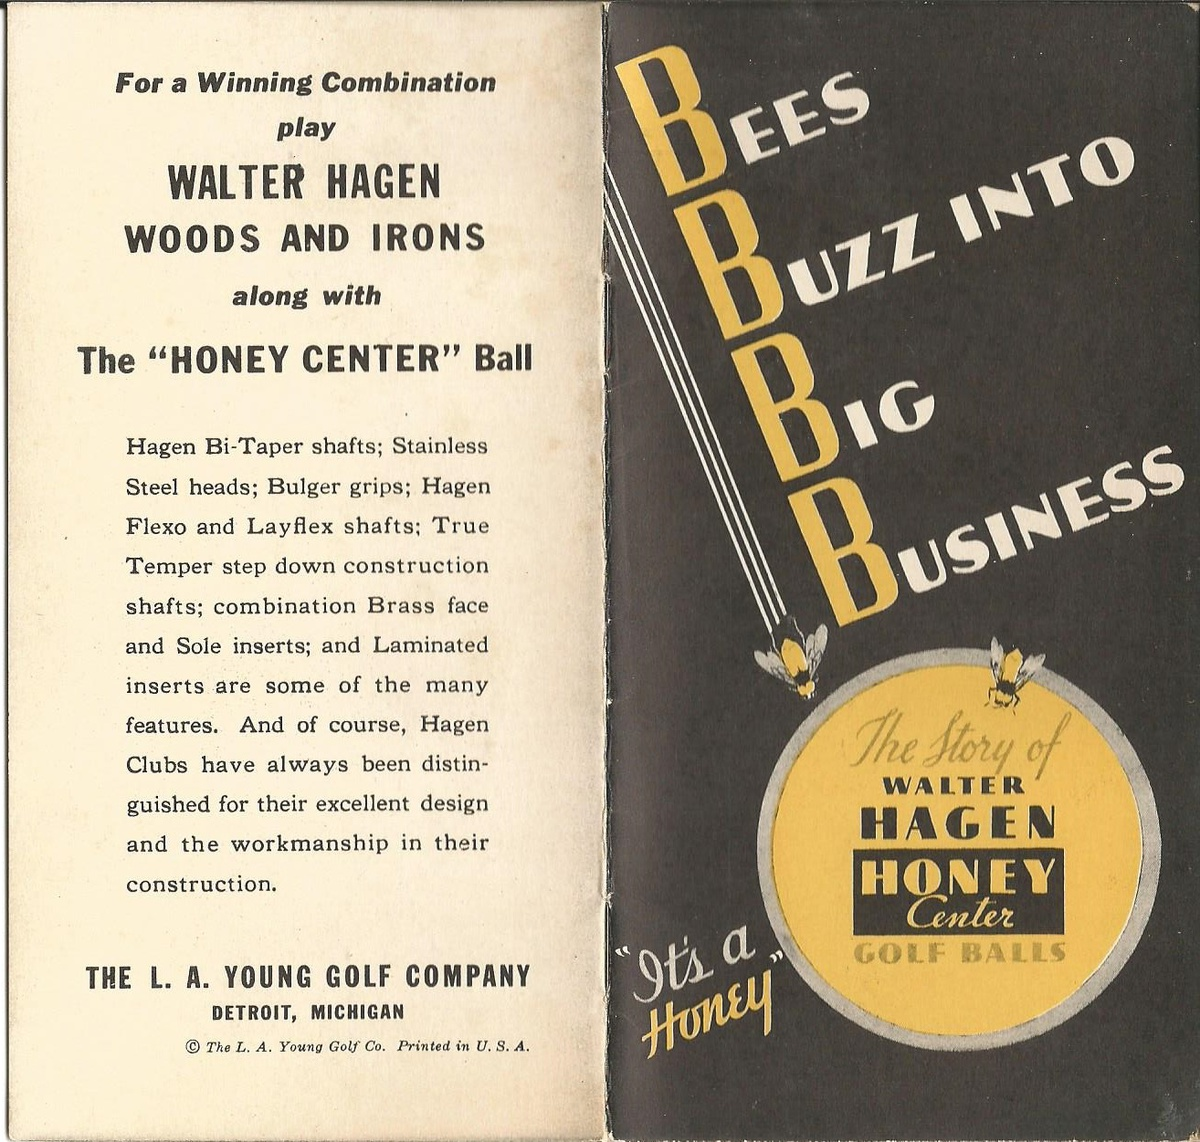 Walter Hagan Honey Center Werbung von 1934